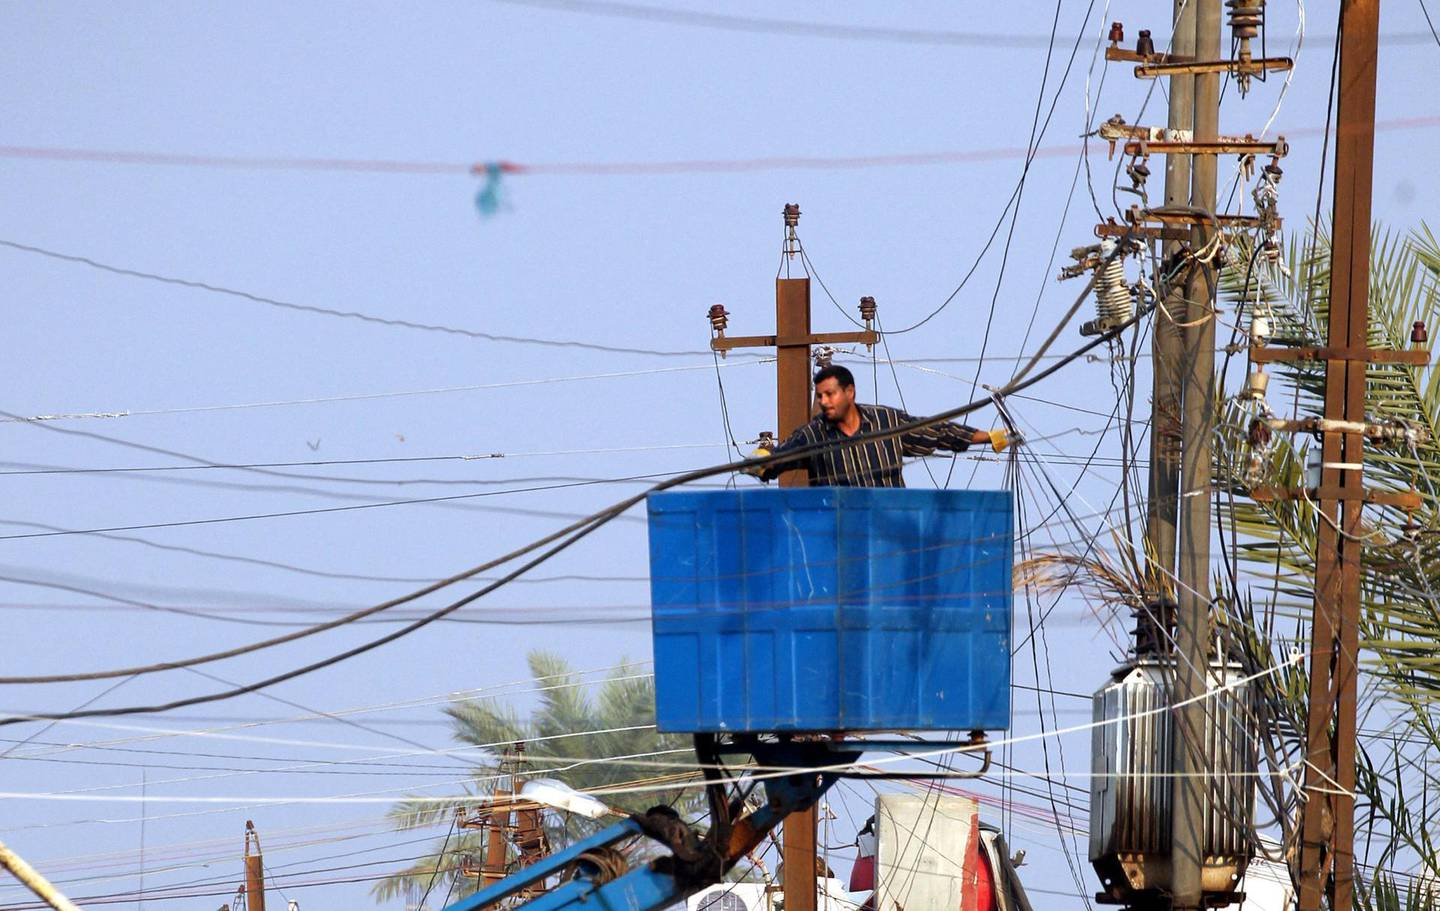 A maintenance worker repairs power lines, cut due to heavy rainfall, in the Iraqi capital Baghdad, on November 23, 2013. Flooding and heavy rain across Iraq has caused widespread structural damage across the country. AFP PHOTO/SABAH ARAR (Photo by SABAH ARAR / AFP)